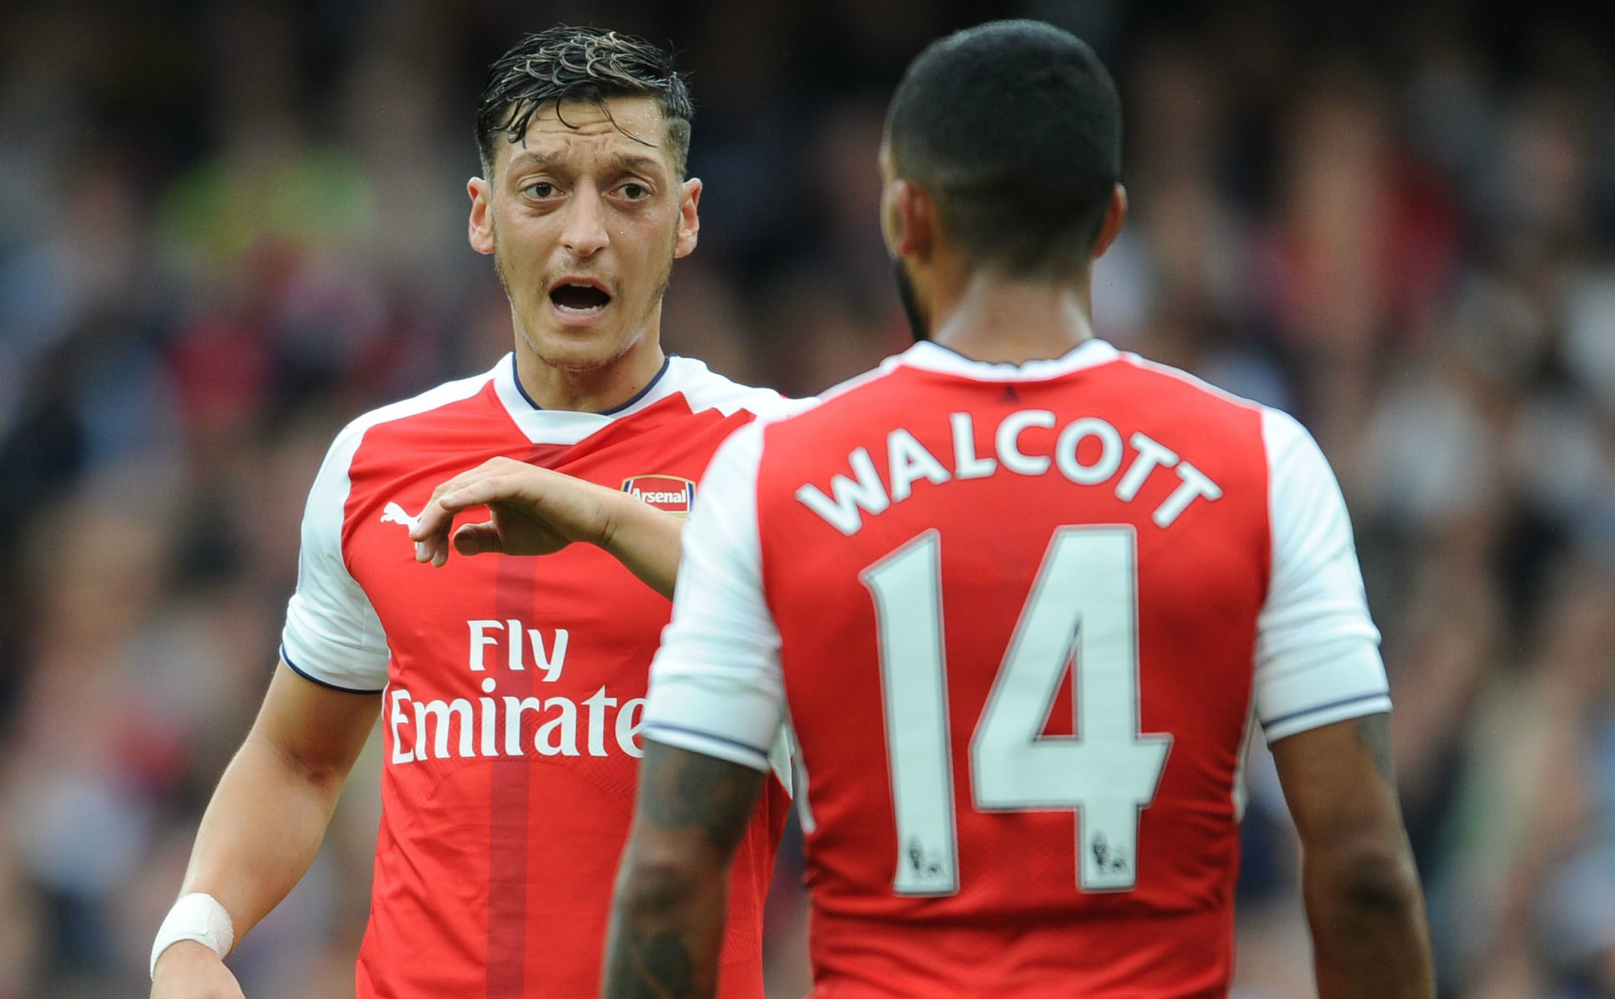 Arsenal legend Thierry Henry reveals why Mesut Ozil and Theo Walcott have been scoring so many goals